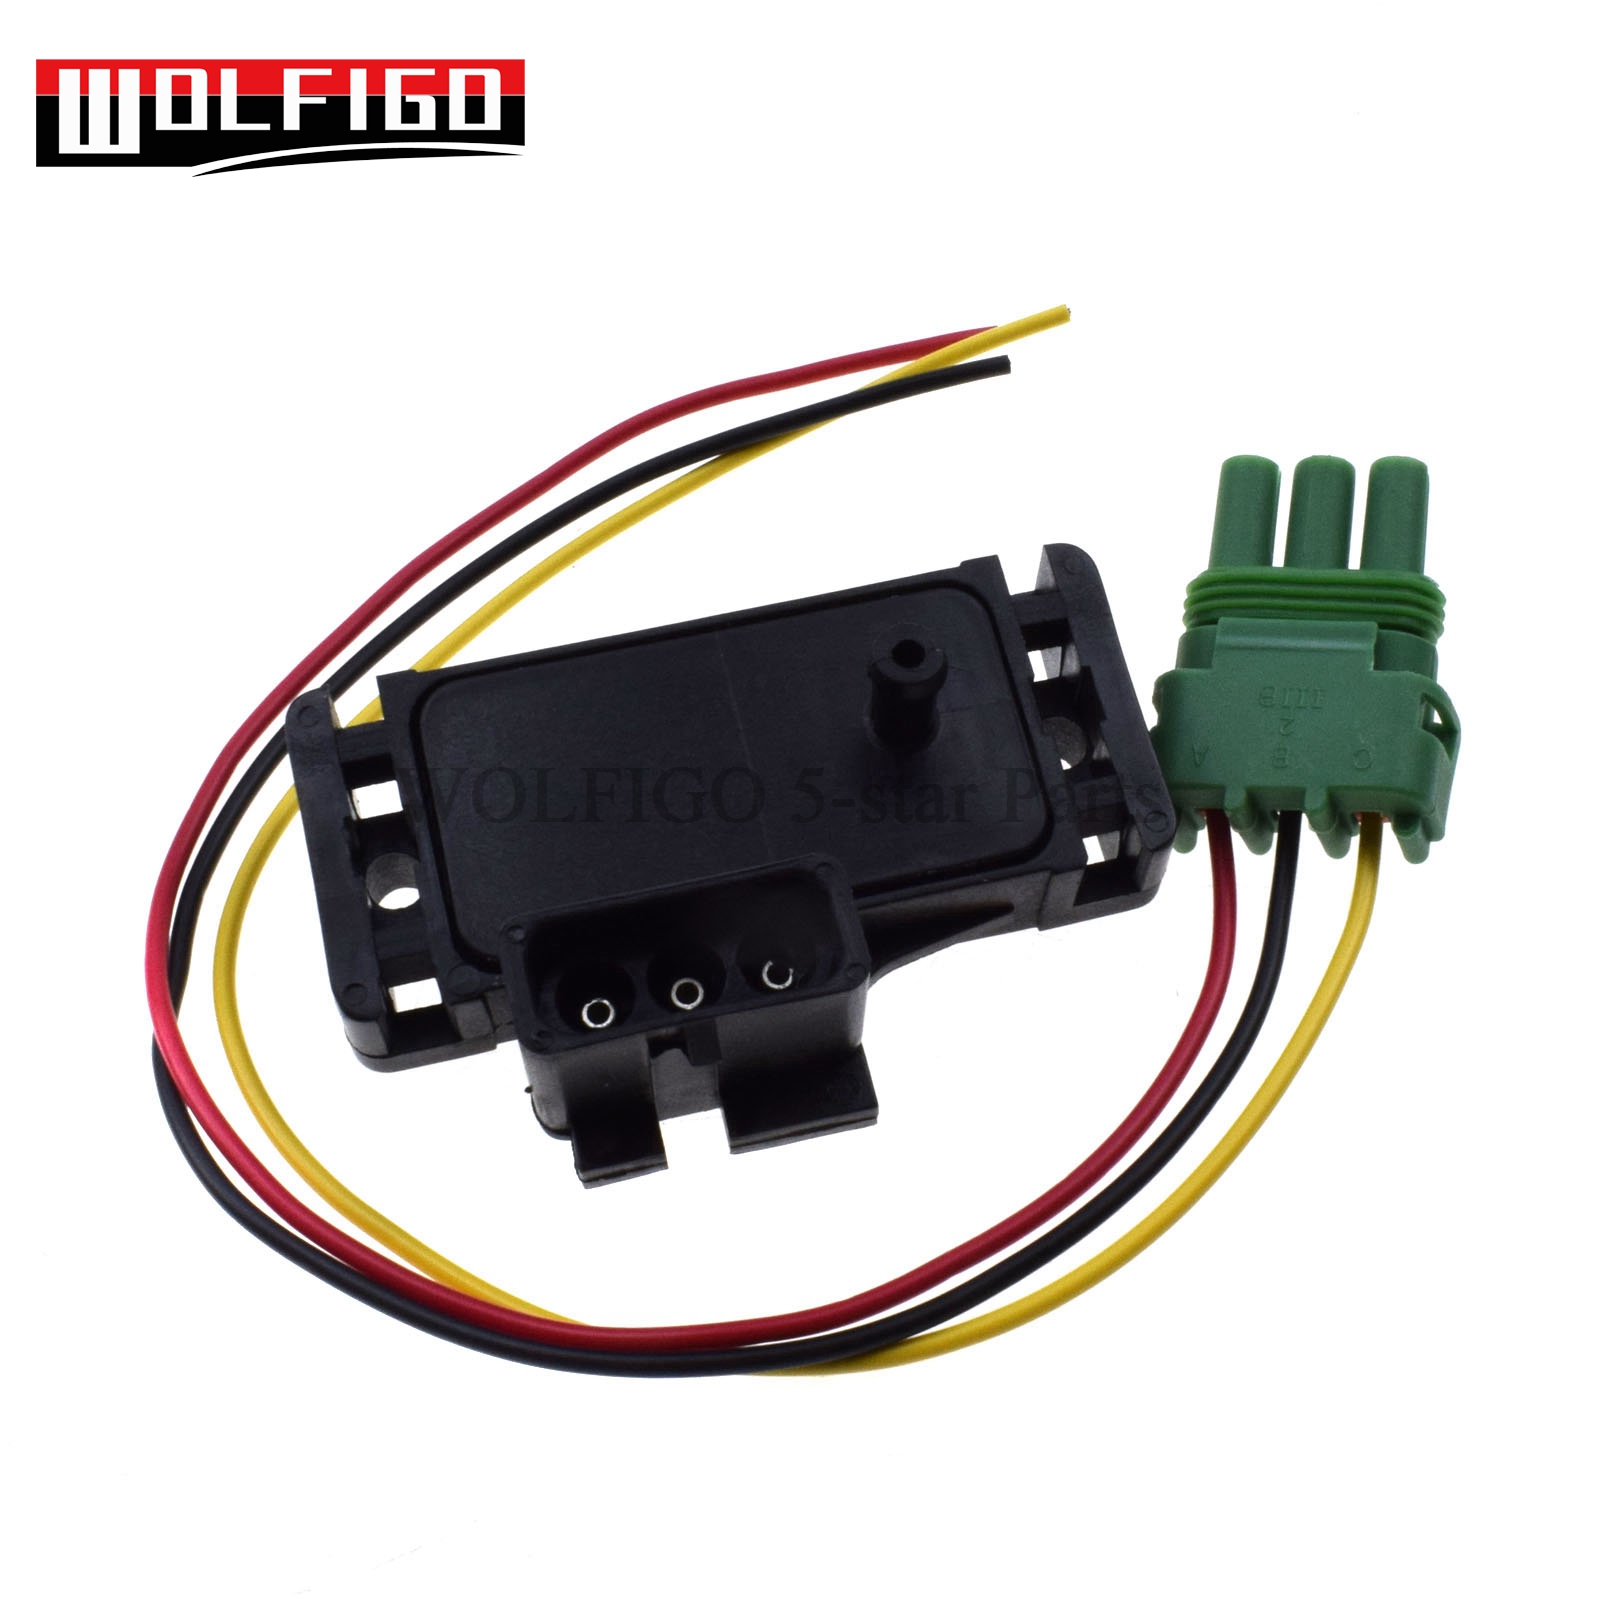 wolfigo new 1 bar map sensor with pigtail connector plug wire 16040749 12223861 for chevy [ 1600 x 1600 Pixel ]